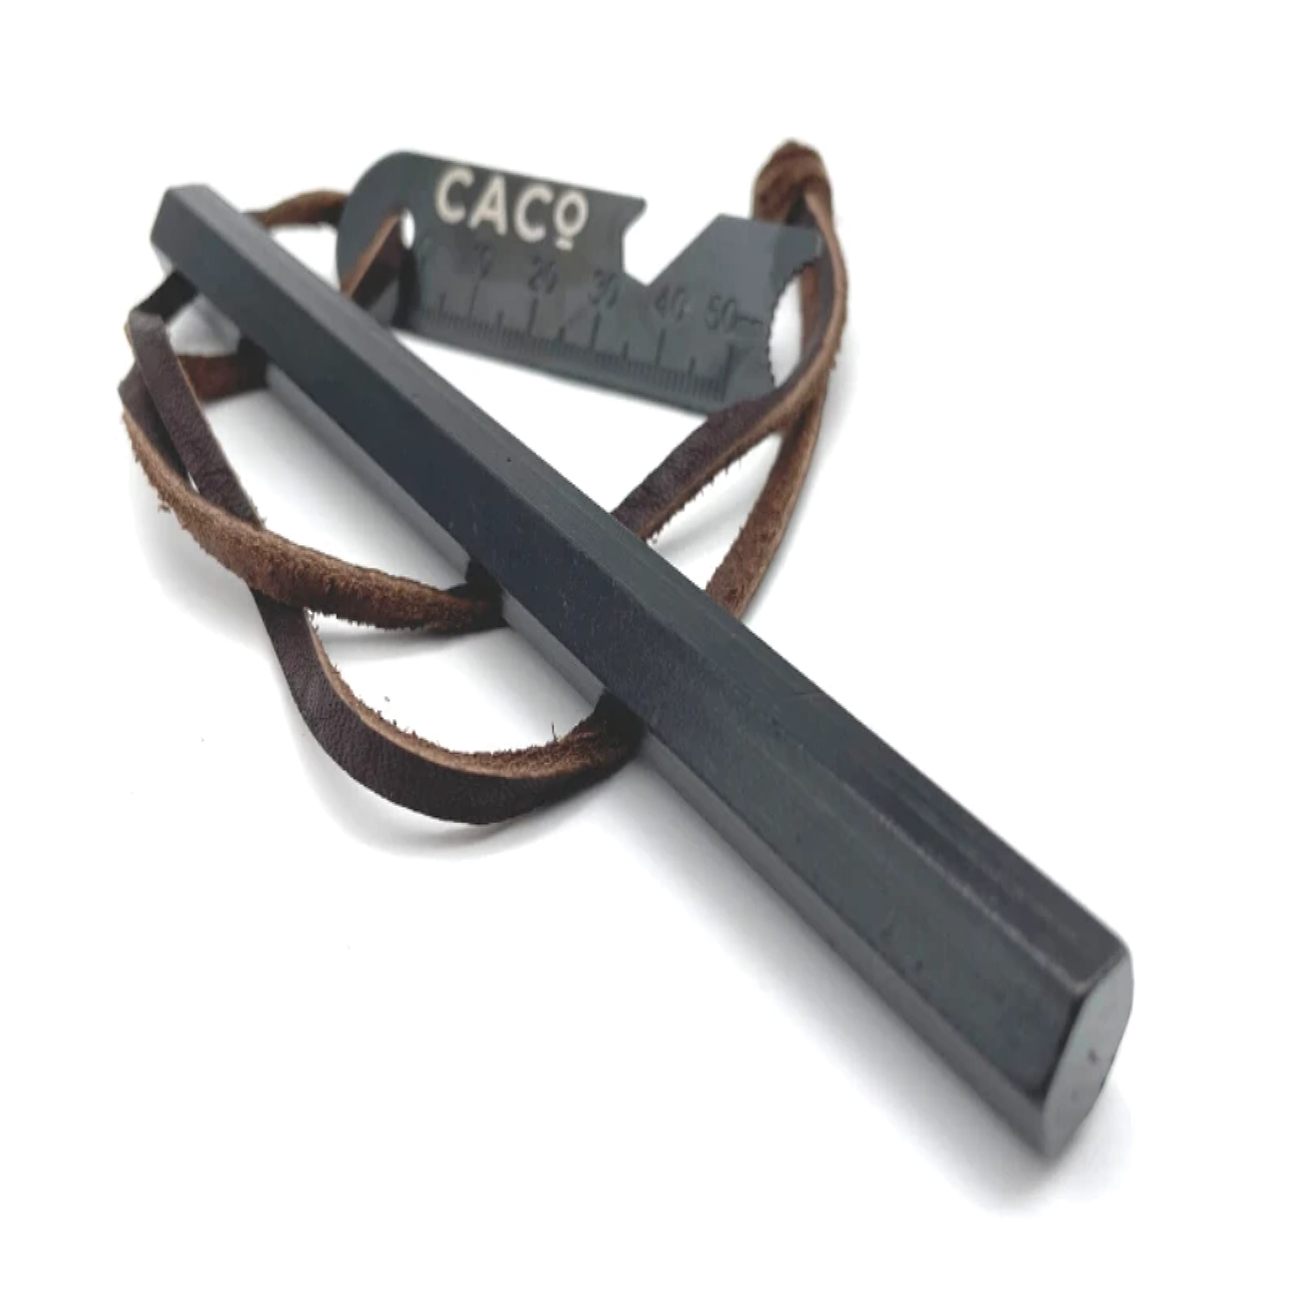 CAC hexagonal fire steel - large